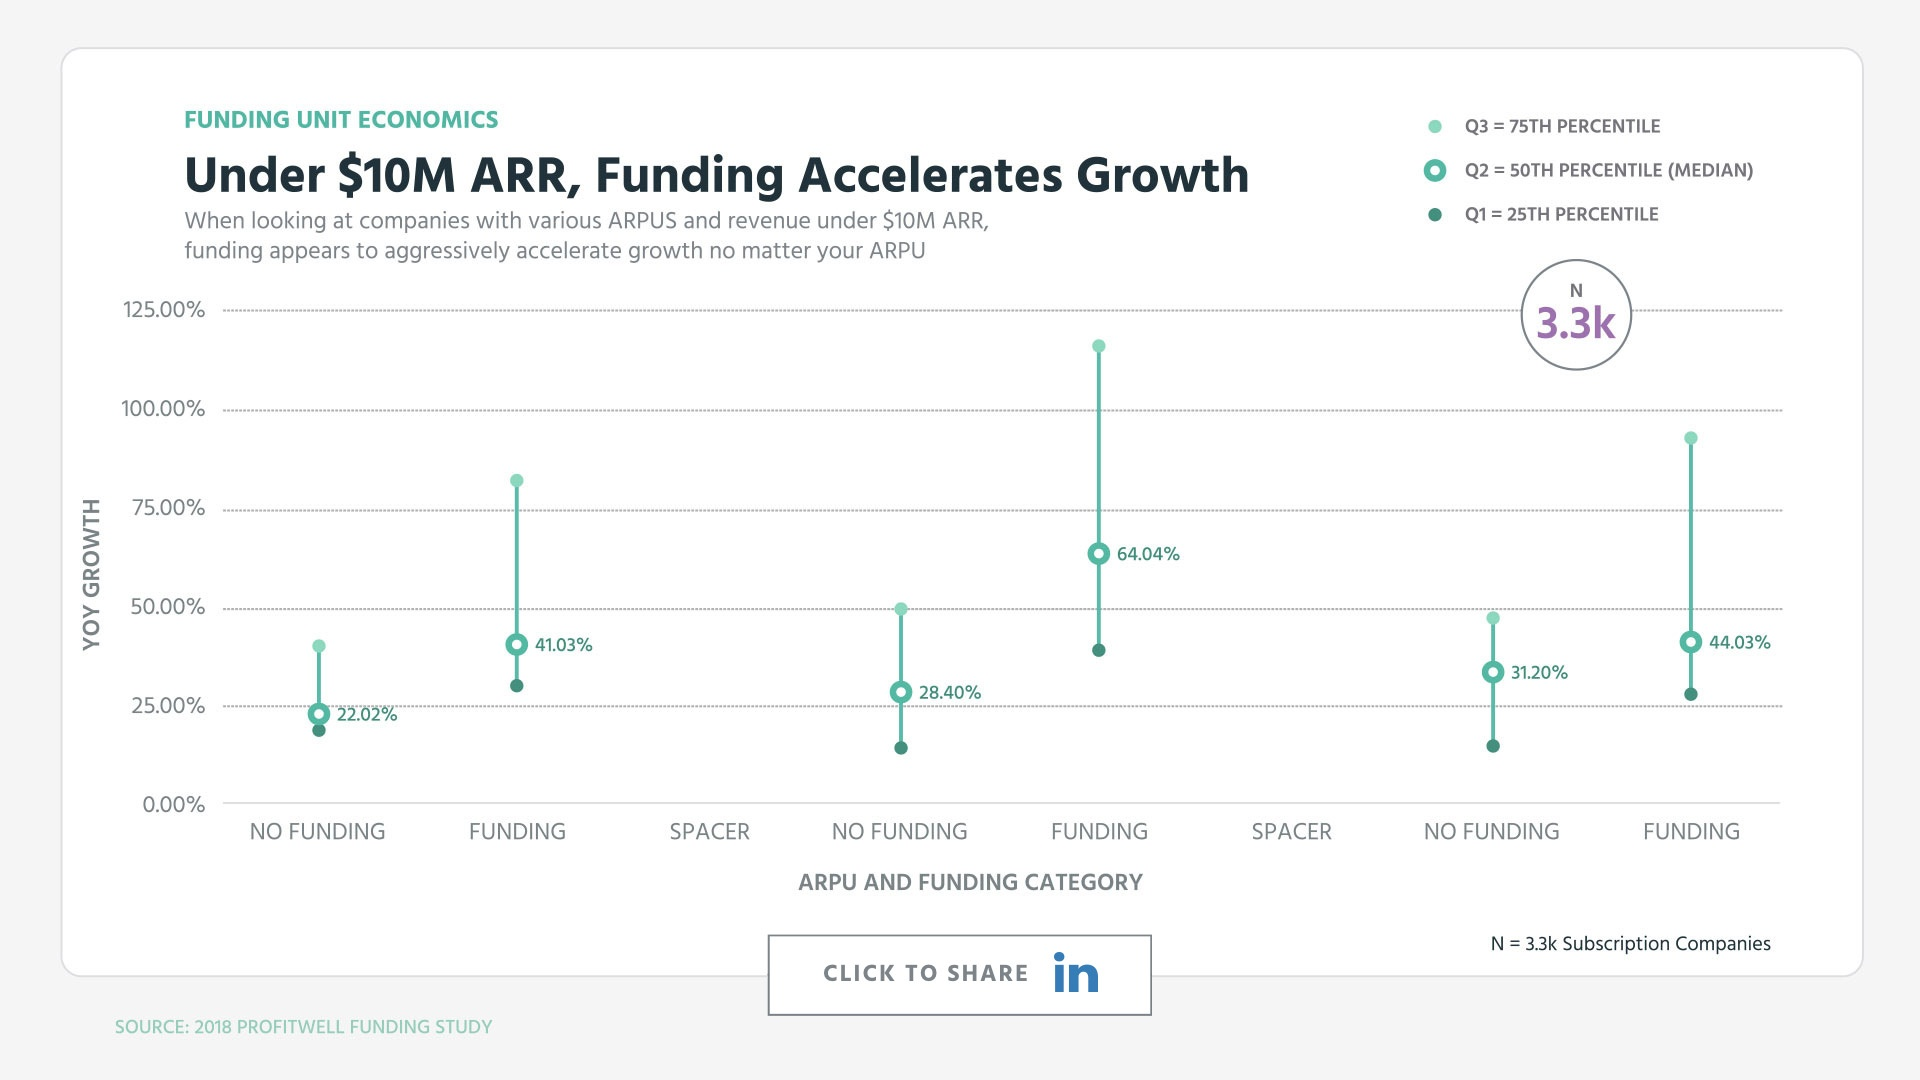 Under $10M ARR, Funding Accelerates Growth